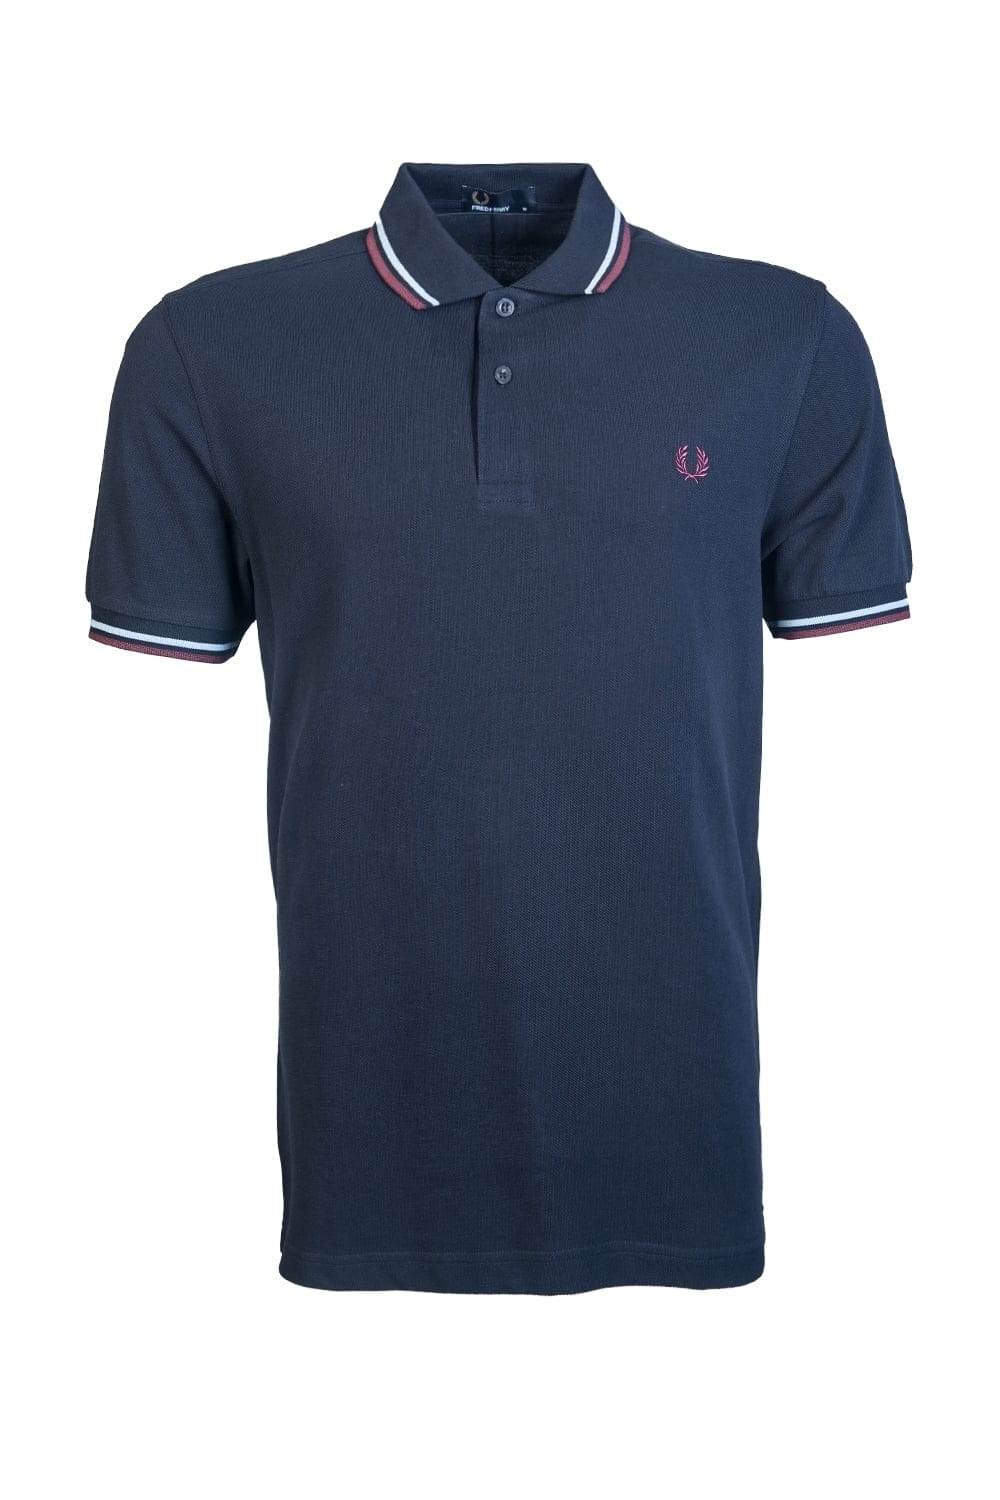 fred perry polo shirt m3600 d39. Black Bedroom Furniture Sets. Home Design Ideas